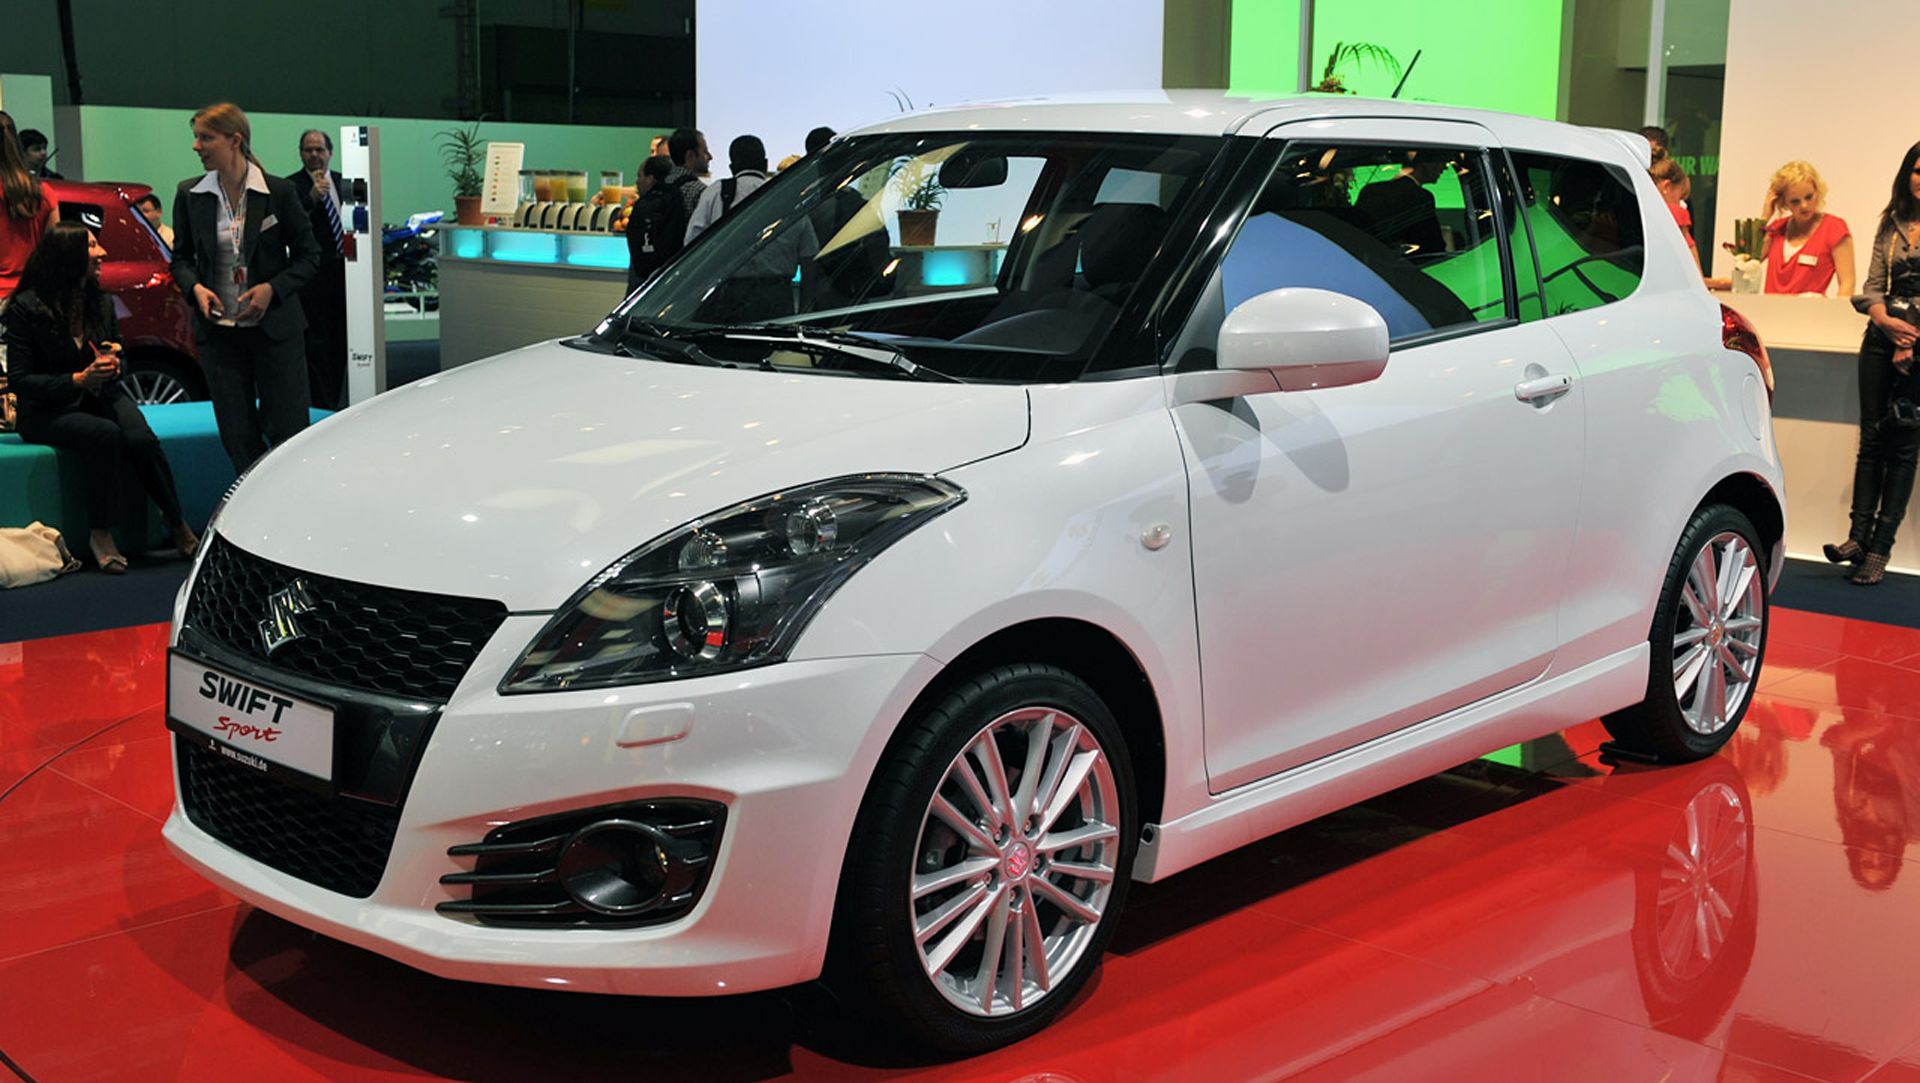 Suzuki swift sport 2013 pictures to pin on pinterest - Find This Pin And More On Drive By Queenayiash 2014 Suzuki Swift Release Date